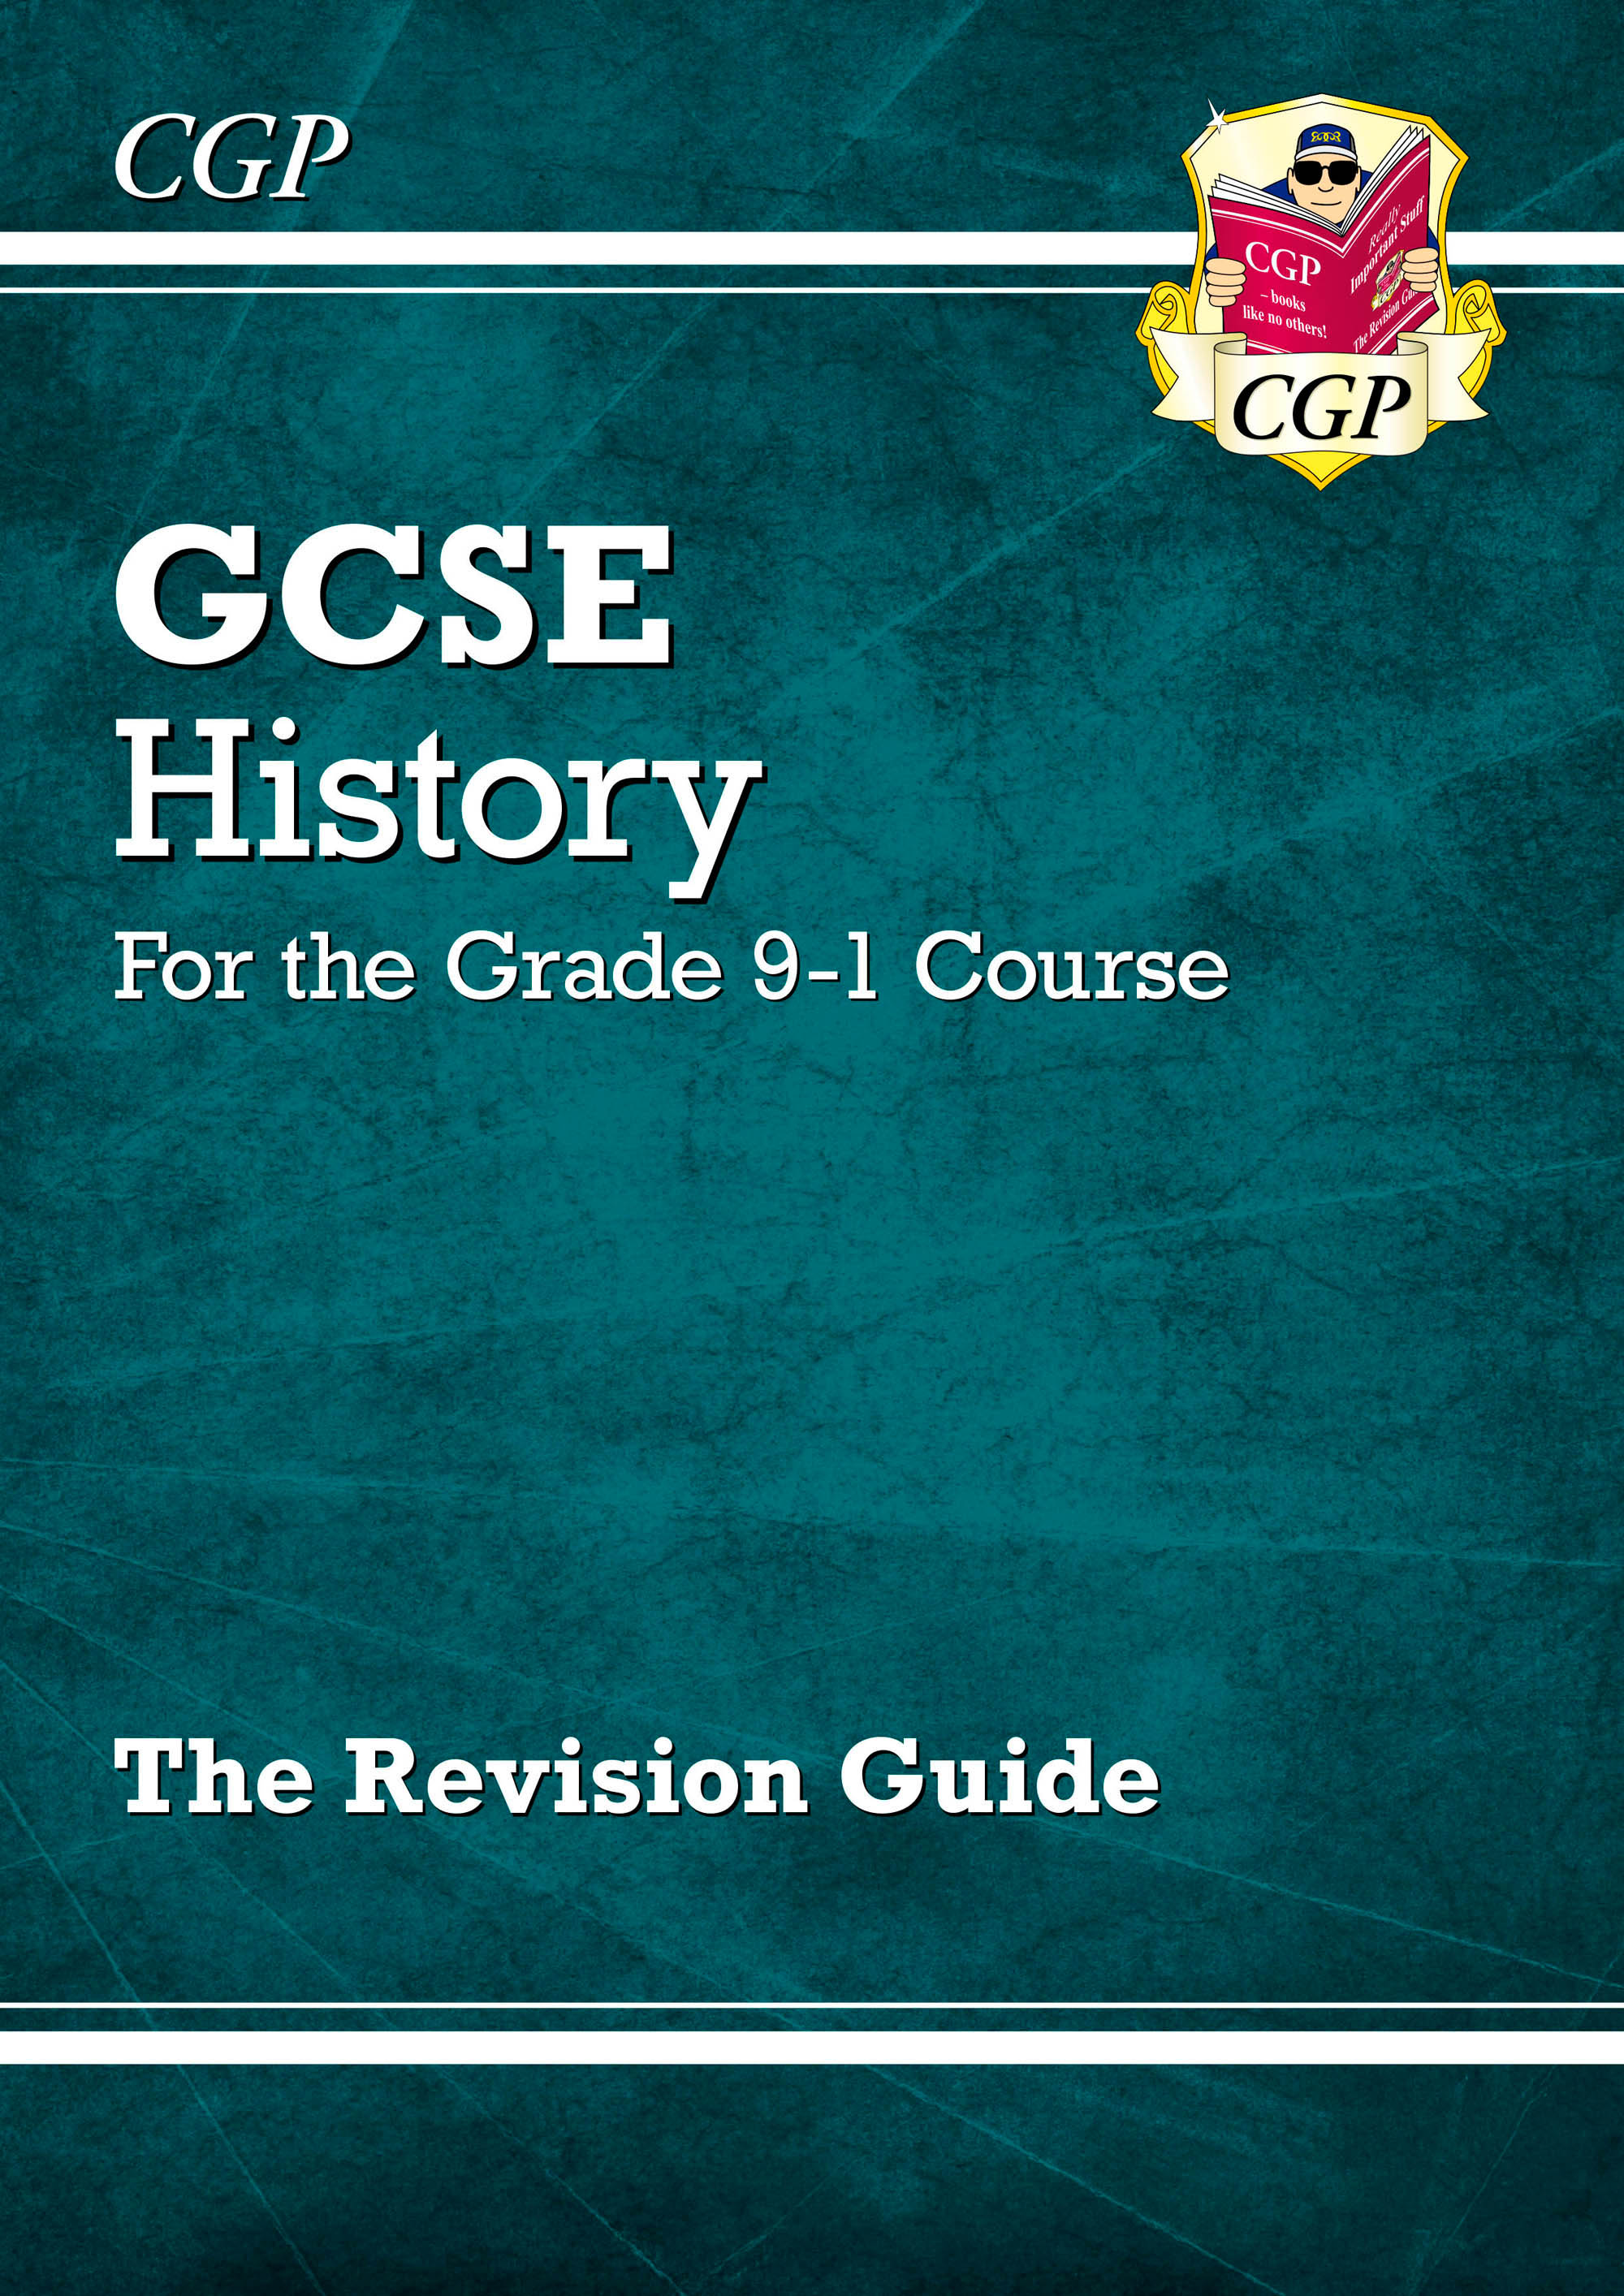 HHR41DK - New GCSE History Revision Guide - for the Grade 9-1 Course